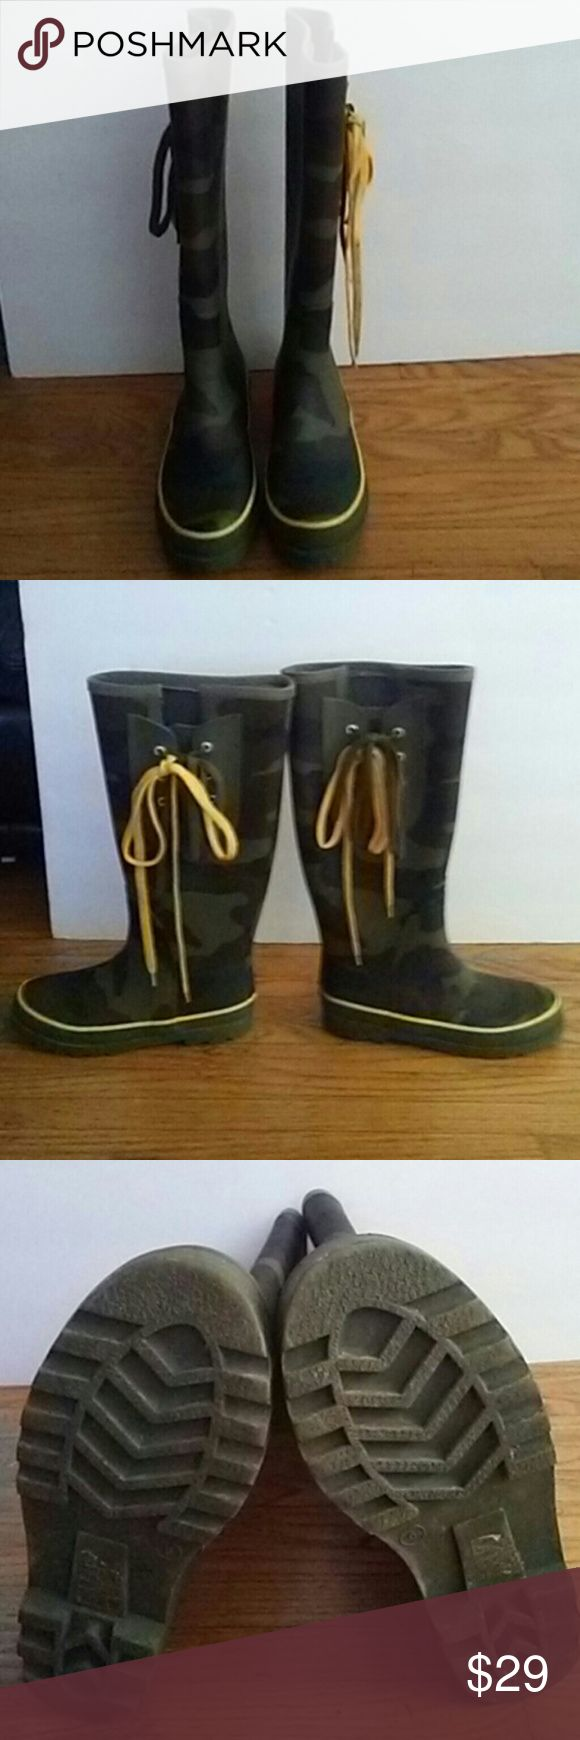 J crew camouflage rubber boots size 6 Nice rain boots in good condition. Has few light scratches J CREW Shoes Winter & Rain Boots